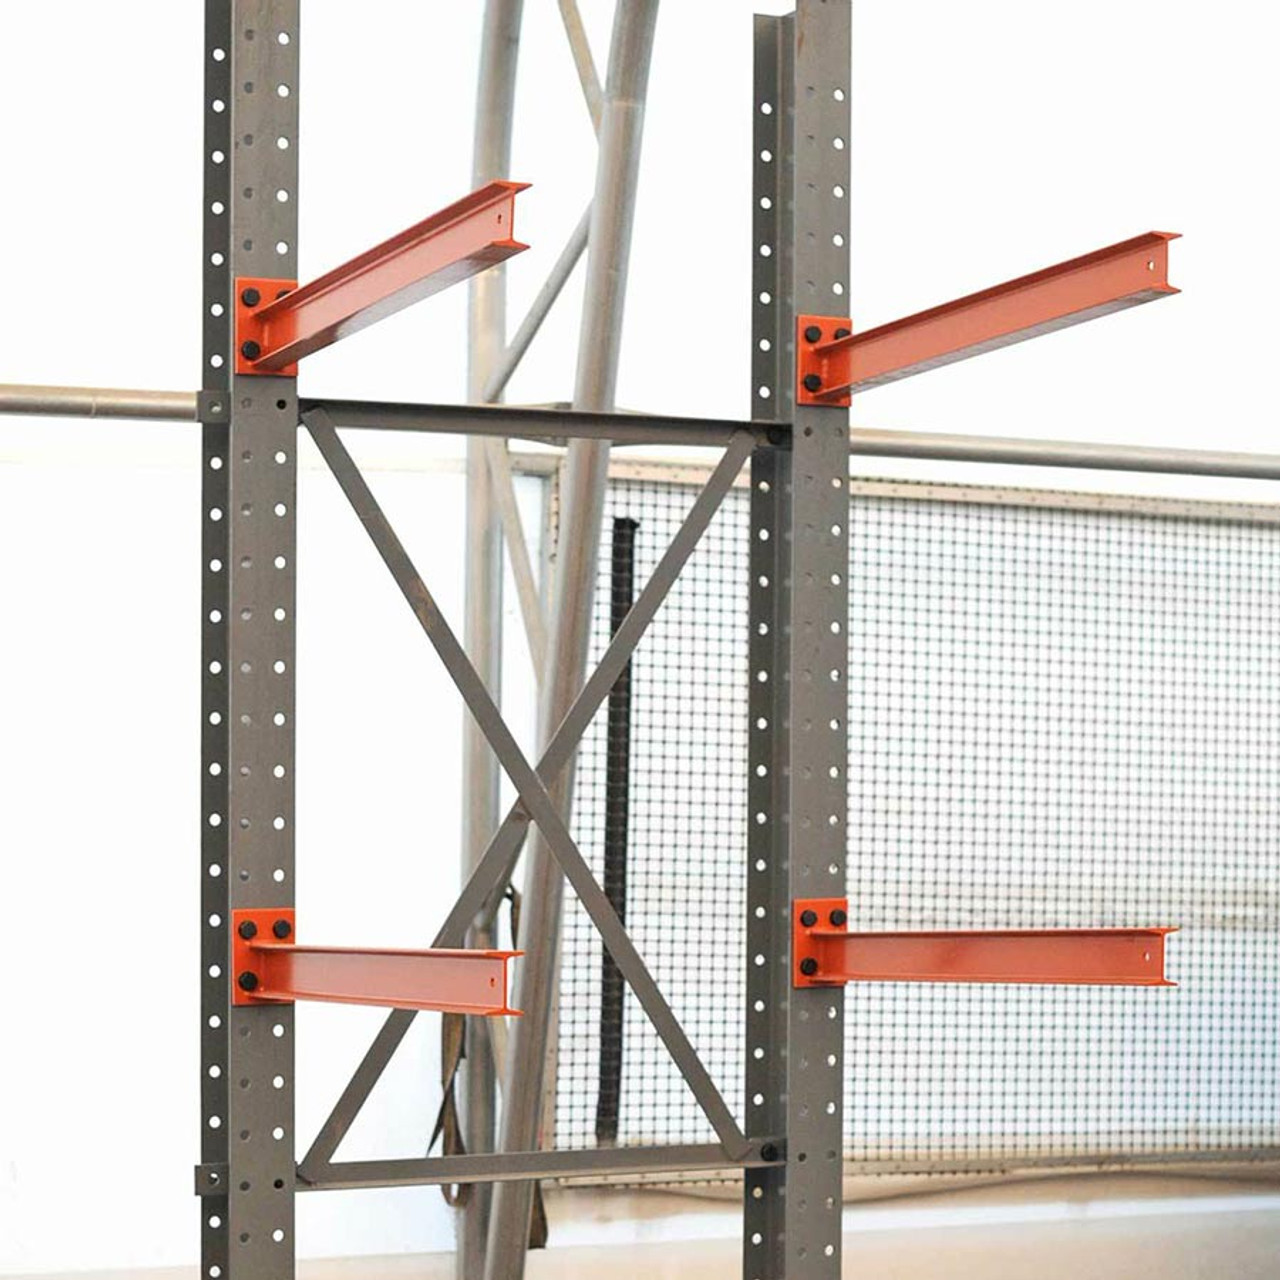 Assembled cantilever racking arms